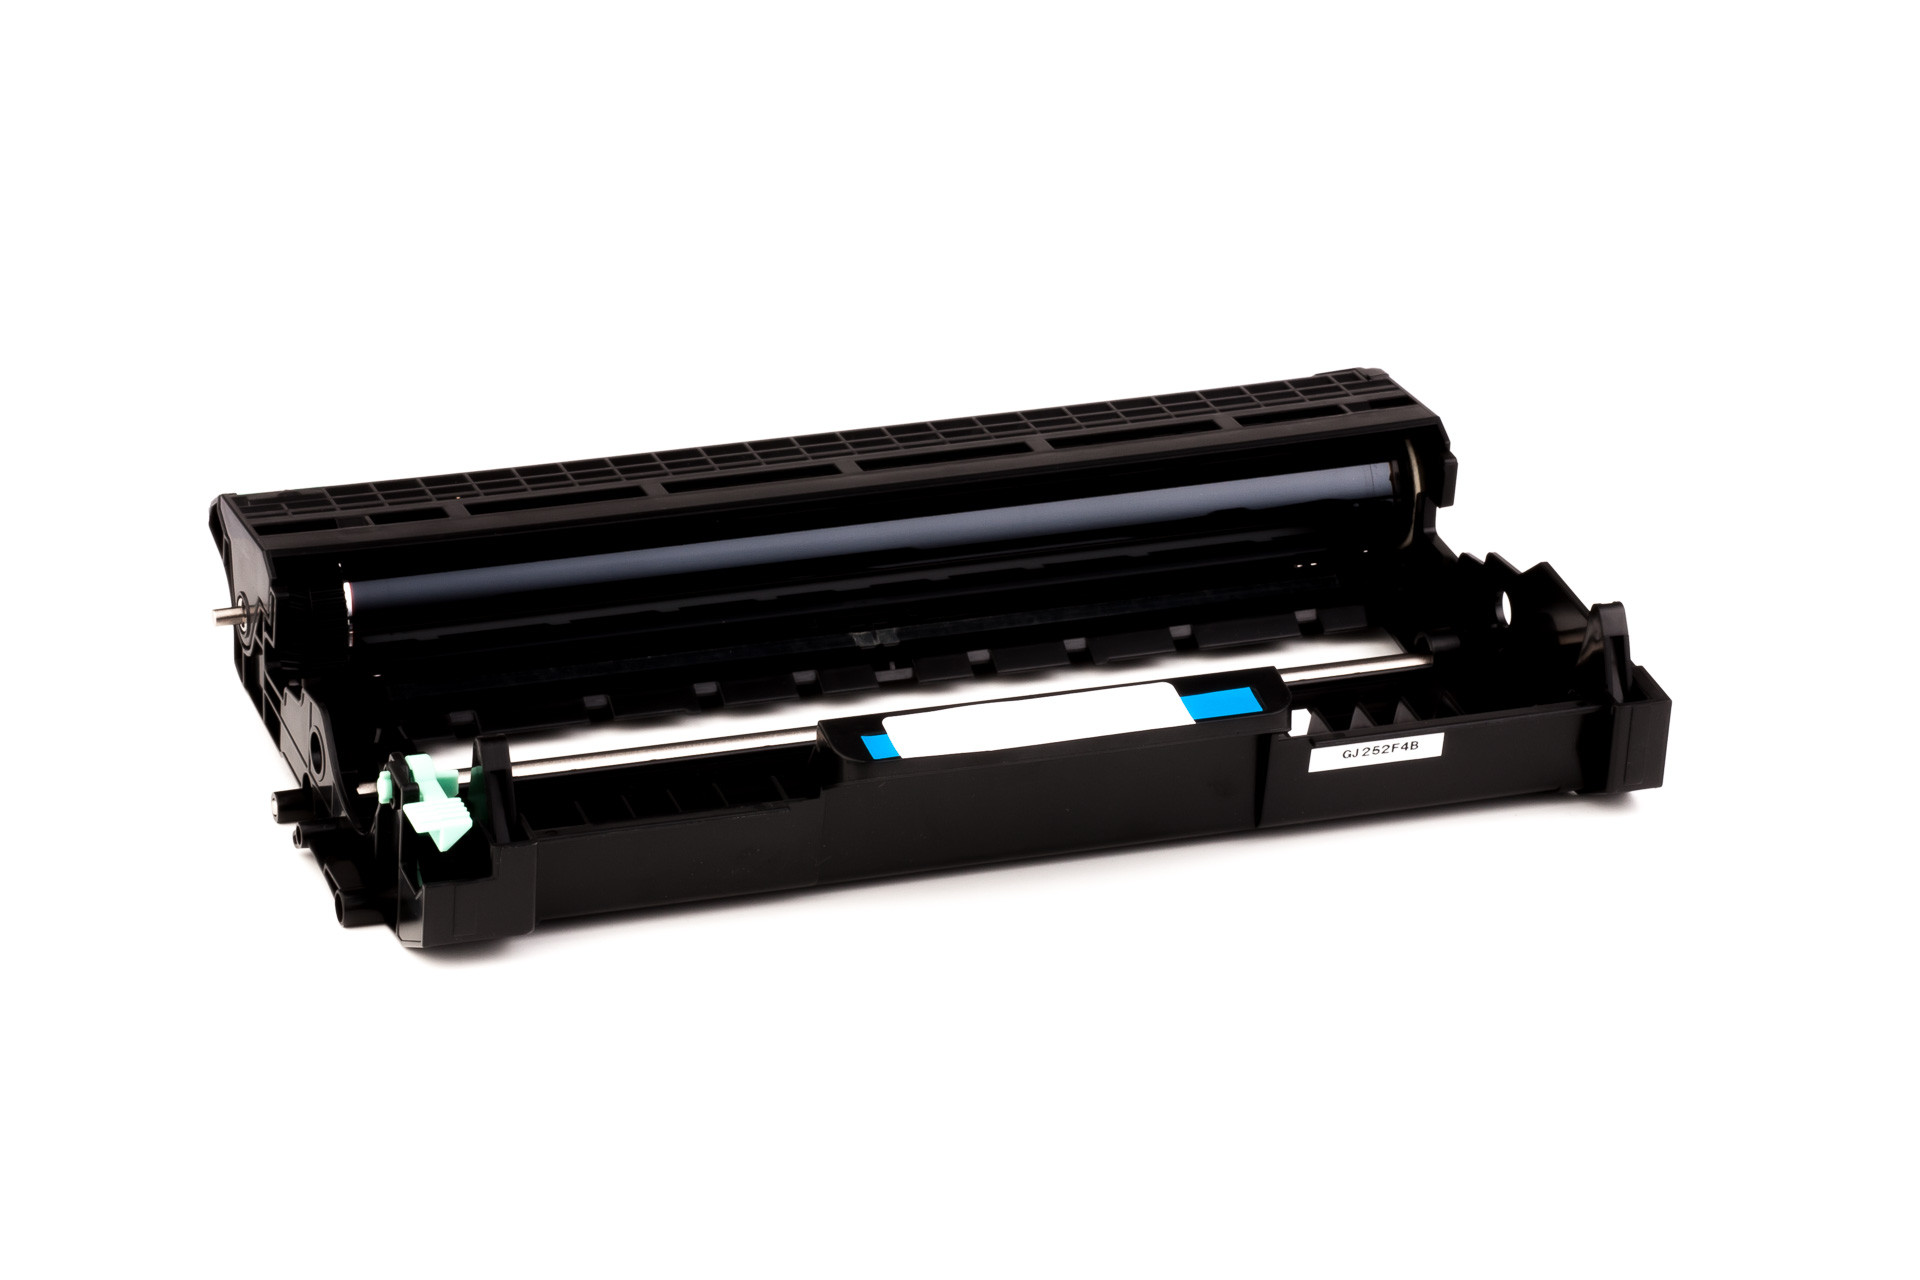 Drum unit (alternative) compatible with Brother HL 2130 / 2240 / 2250 / 2270 / DCP 7055 / 7057 / 7060 / 7065 / 7070 / MFC 7360 / 7460 / 7860  // DR2200 / DR 2200 /// universal Drum also for DR2210 / DR2010